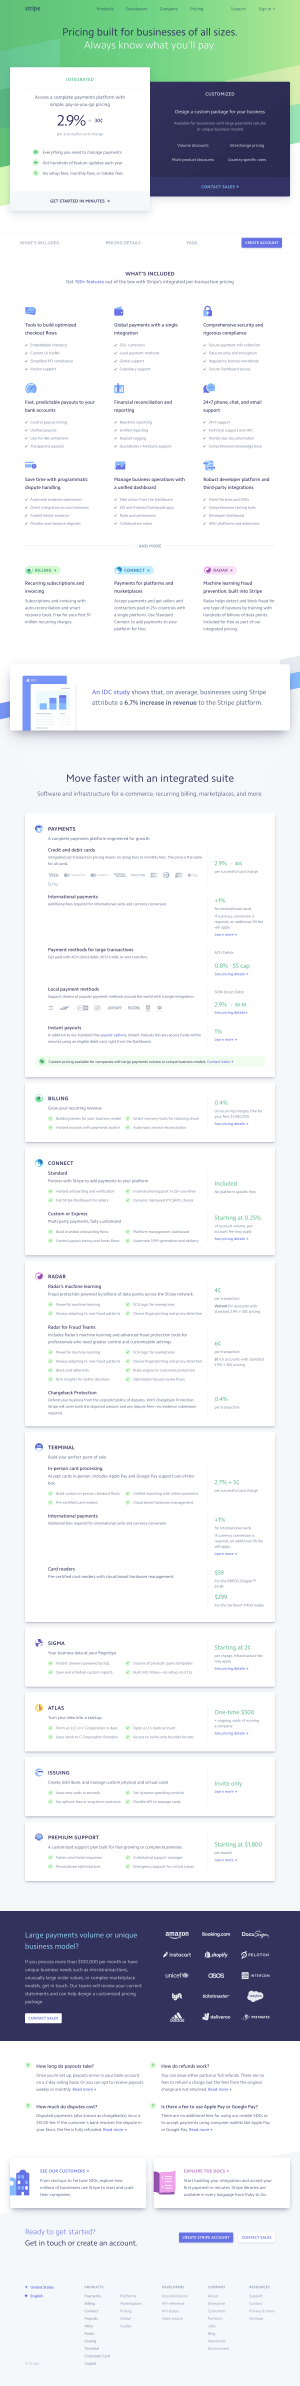 Stripe - Pricing page